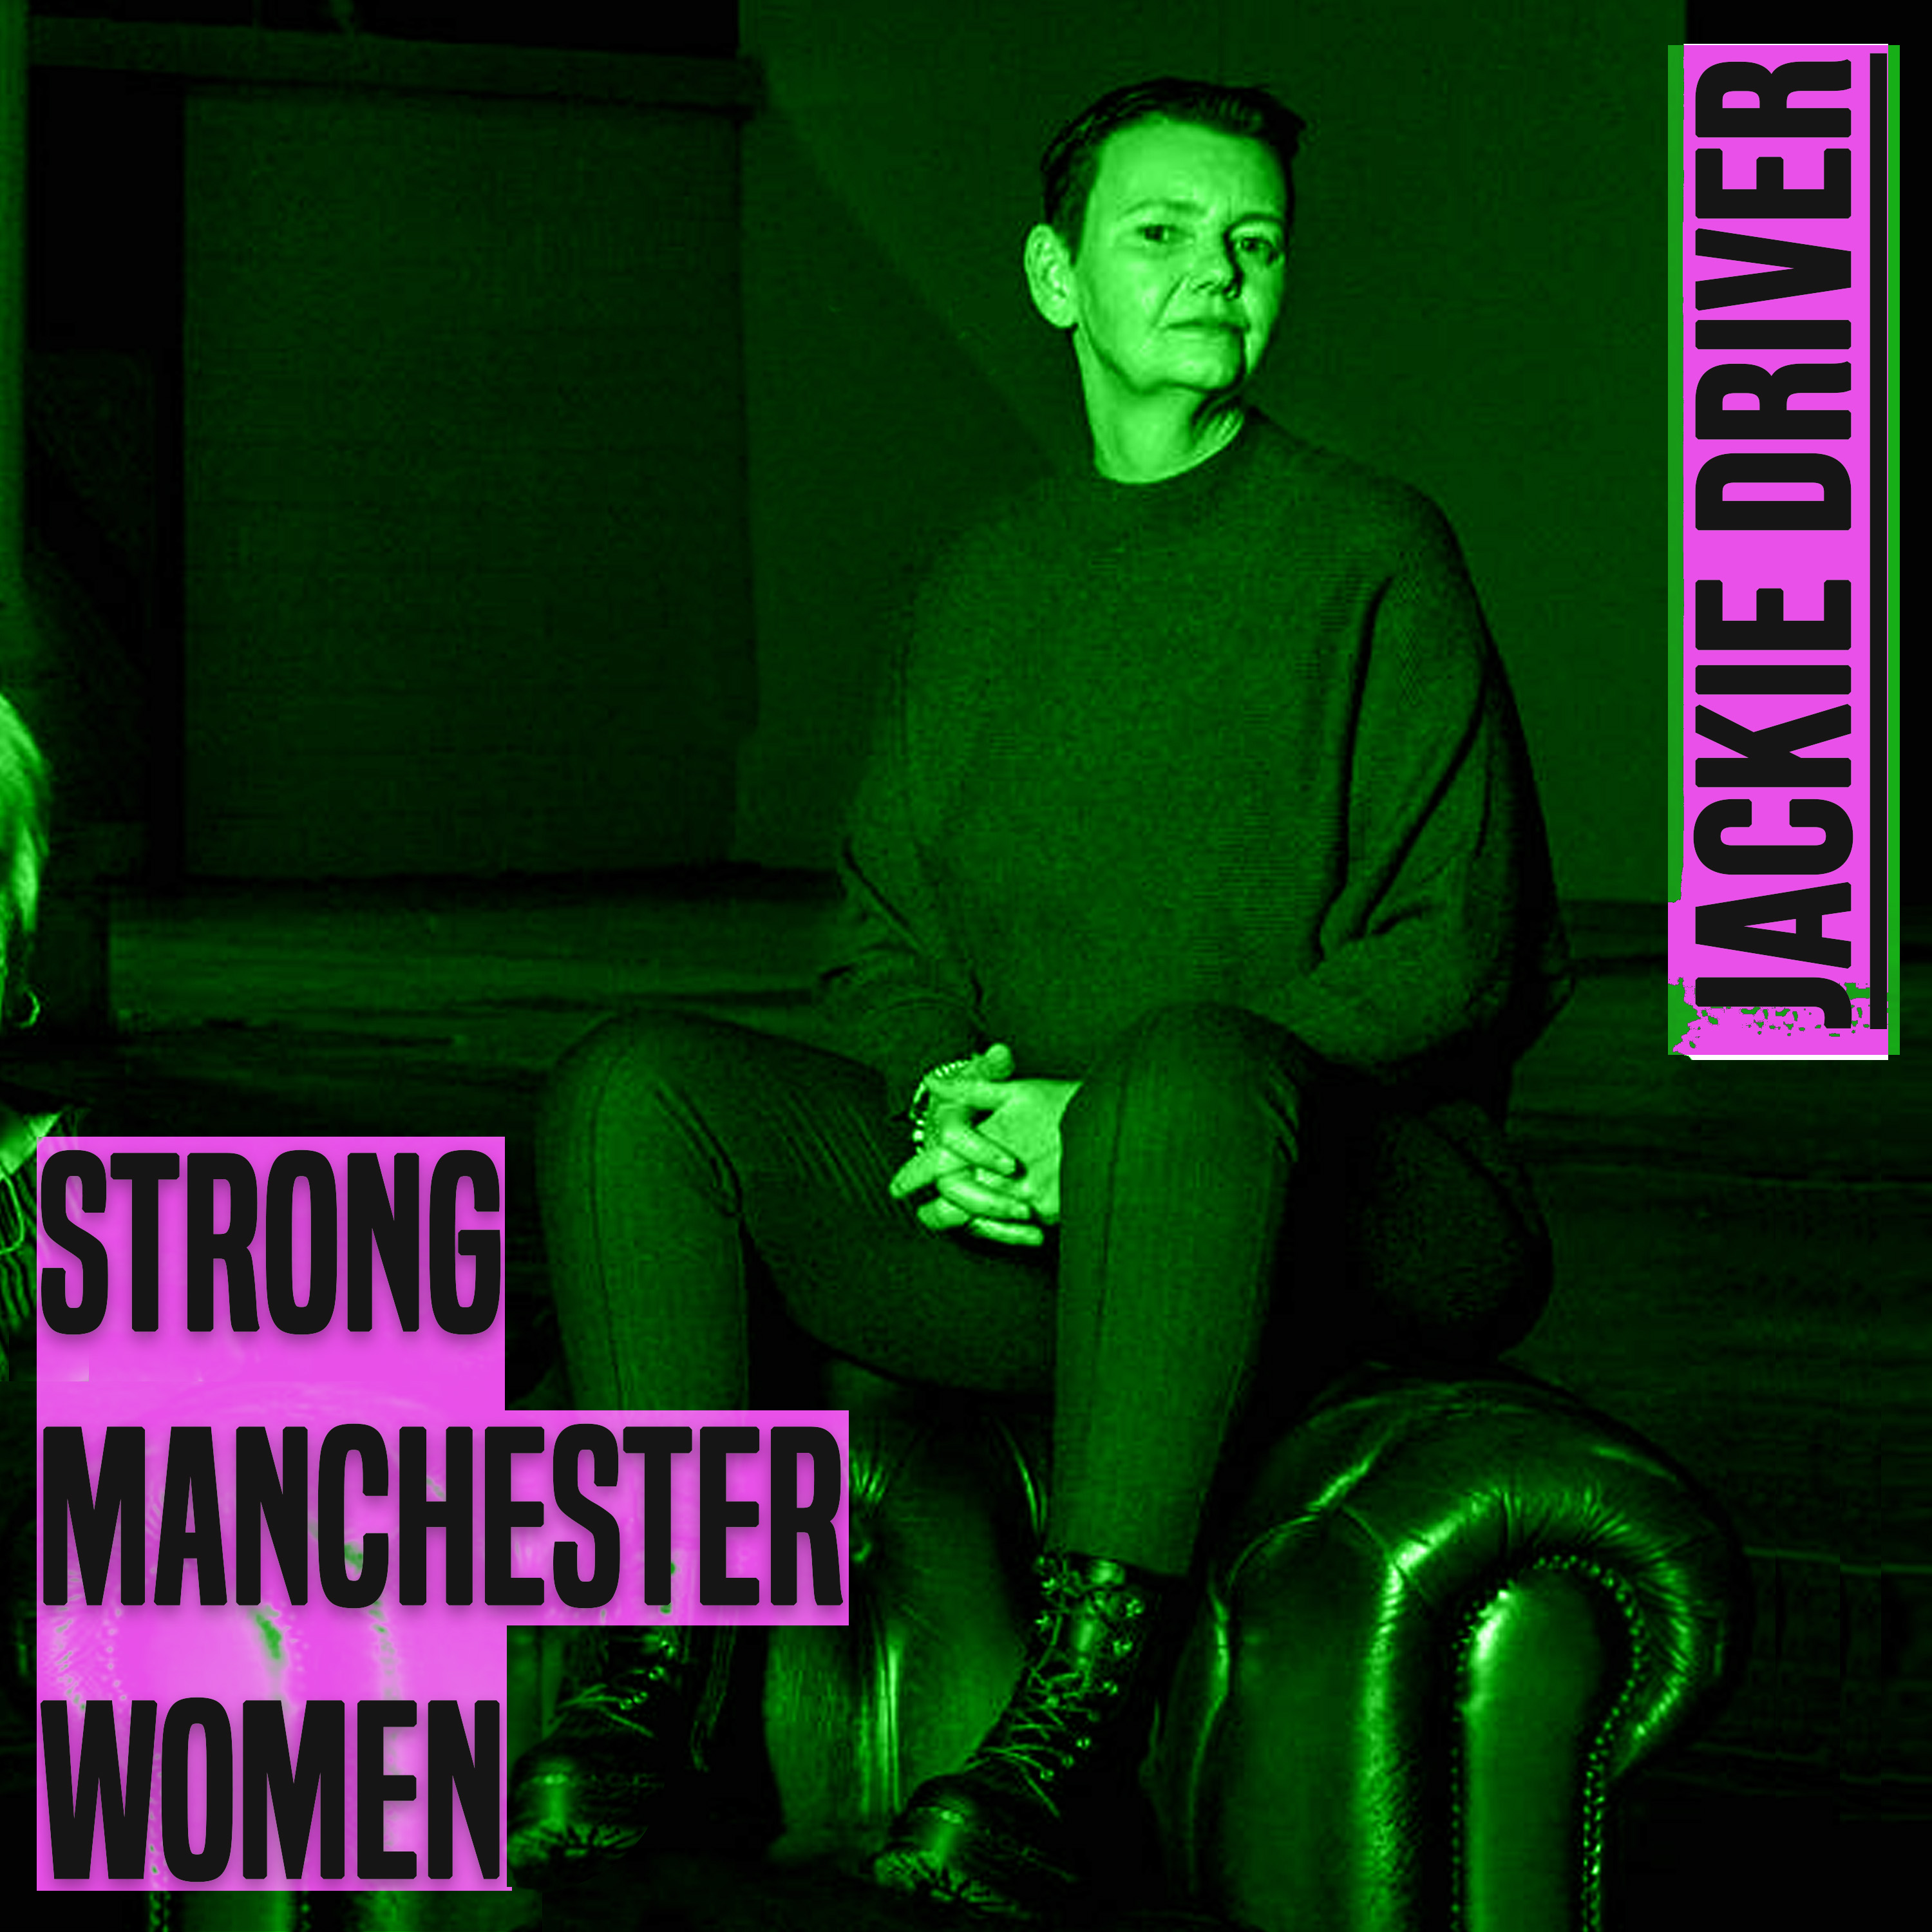 an image of a woman with short brown hair sits on top of a leather chair. The photo is tinged green. On the left of the seated woman are the words 'strong manchester women' and to the top right of the woman are the words 'jackie driver' Both sets of words are in bold grey type.